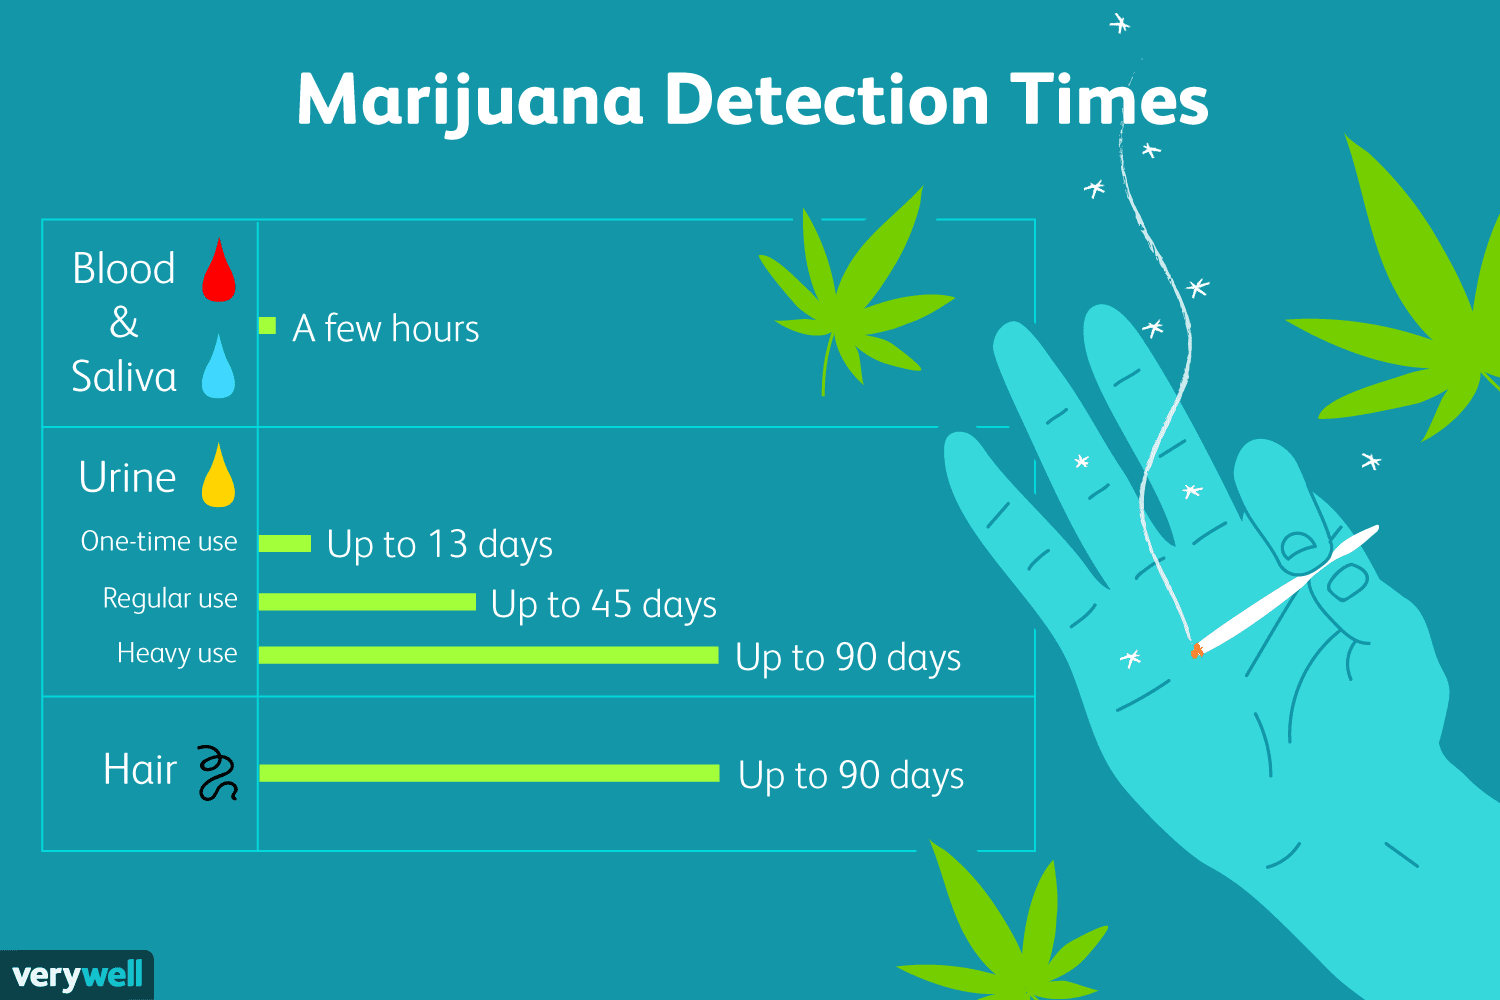 How long does marijuana stay in the body?